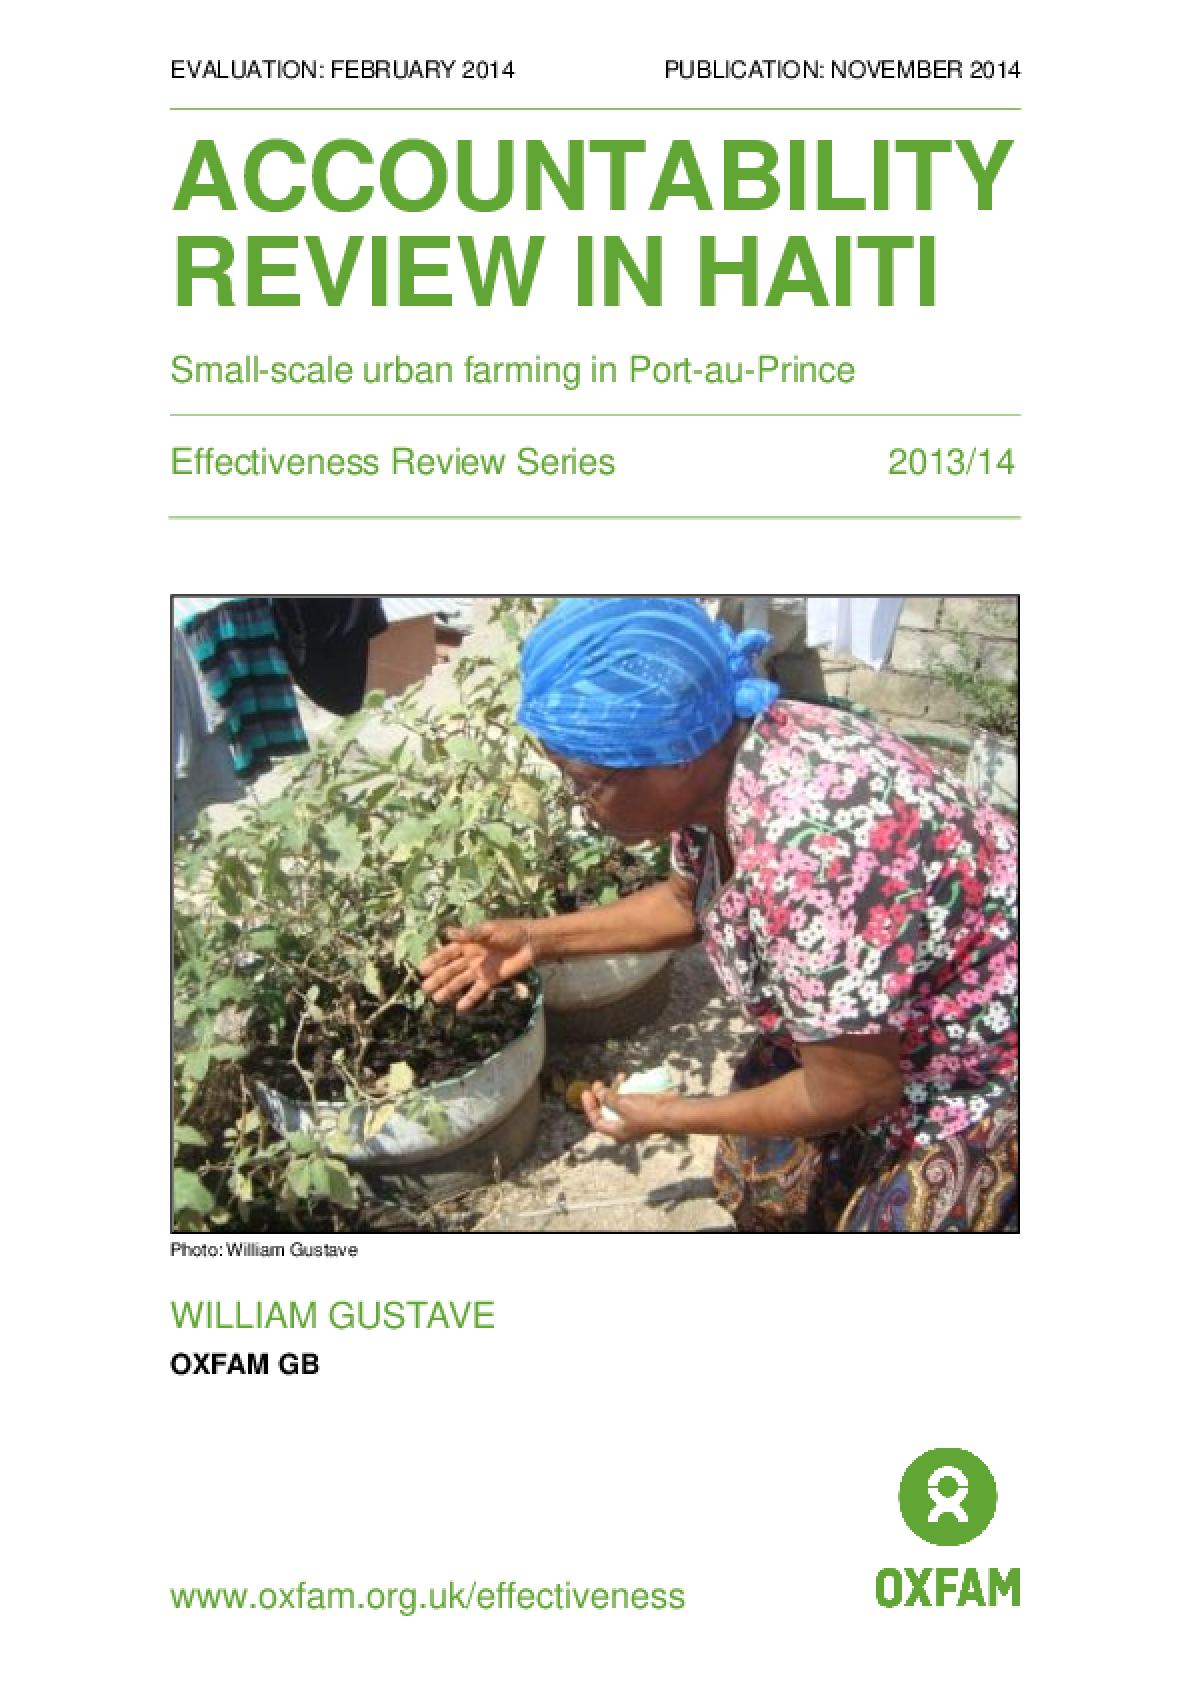 Accountability Review in Haiti: Small-scale urban farming in Port-au-Prince